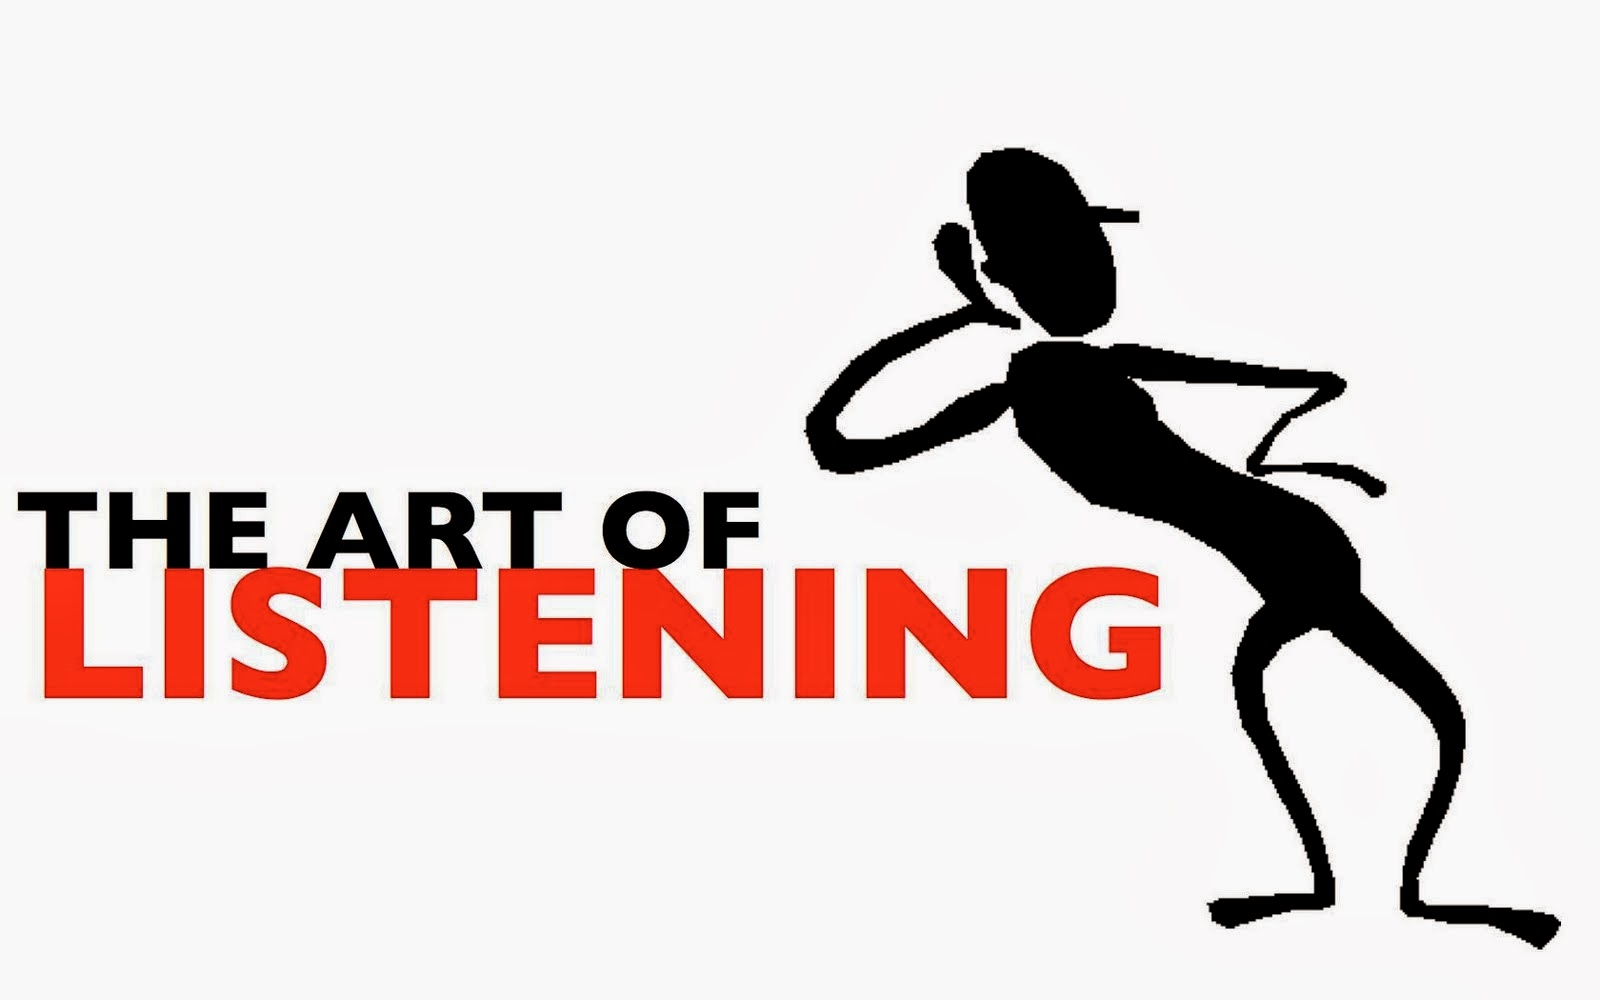 essay on listening comprehension Listening comprehension - 96 83-109 39 44 4 28 8:0 492 essay composition: grammar and mechanics wiat-iii subtest listening comprehension 98 96 2 1700 n 25% n early reading skills 98 90 8 1500 n =25% n.